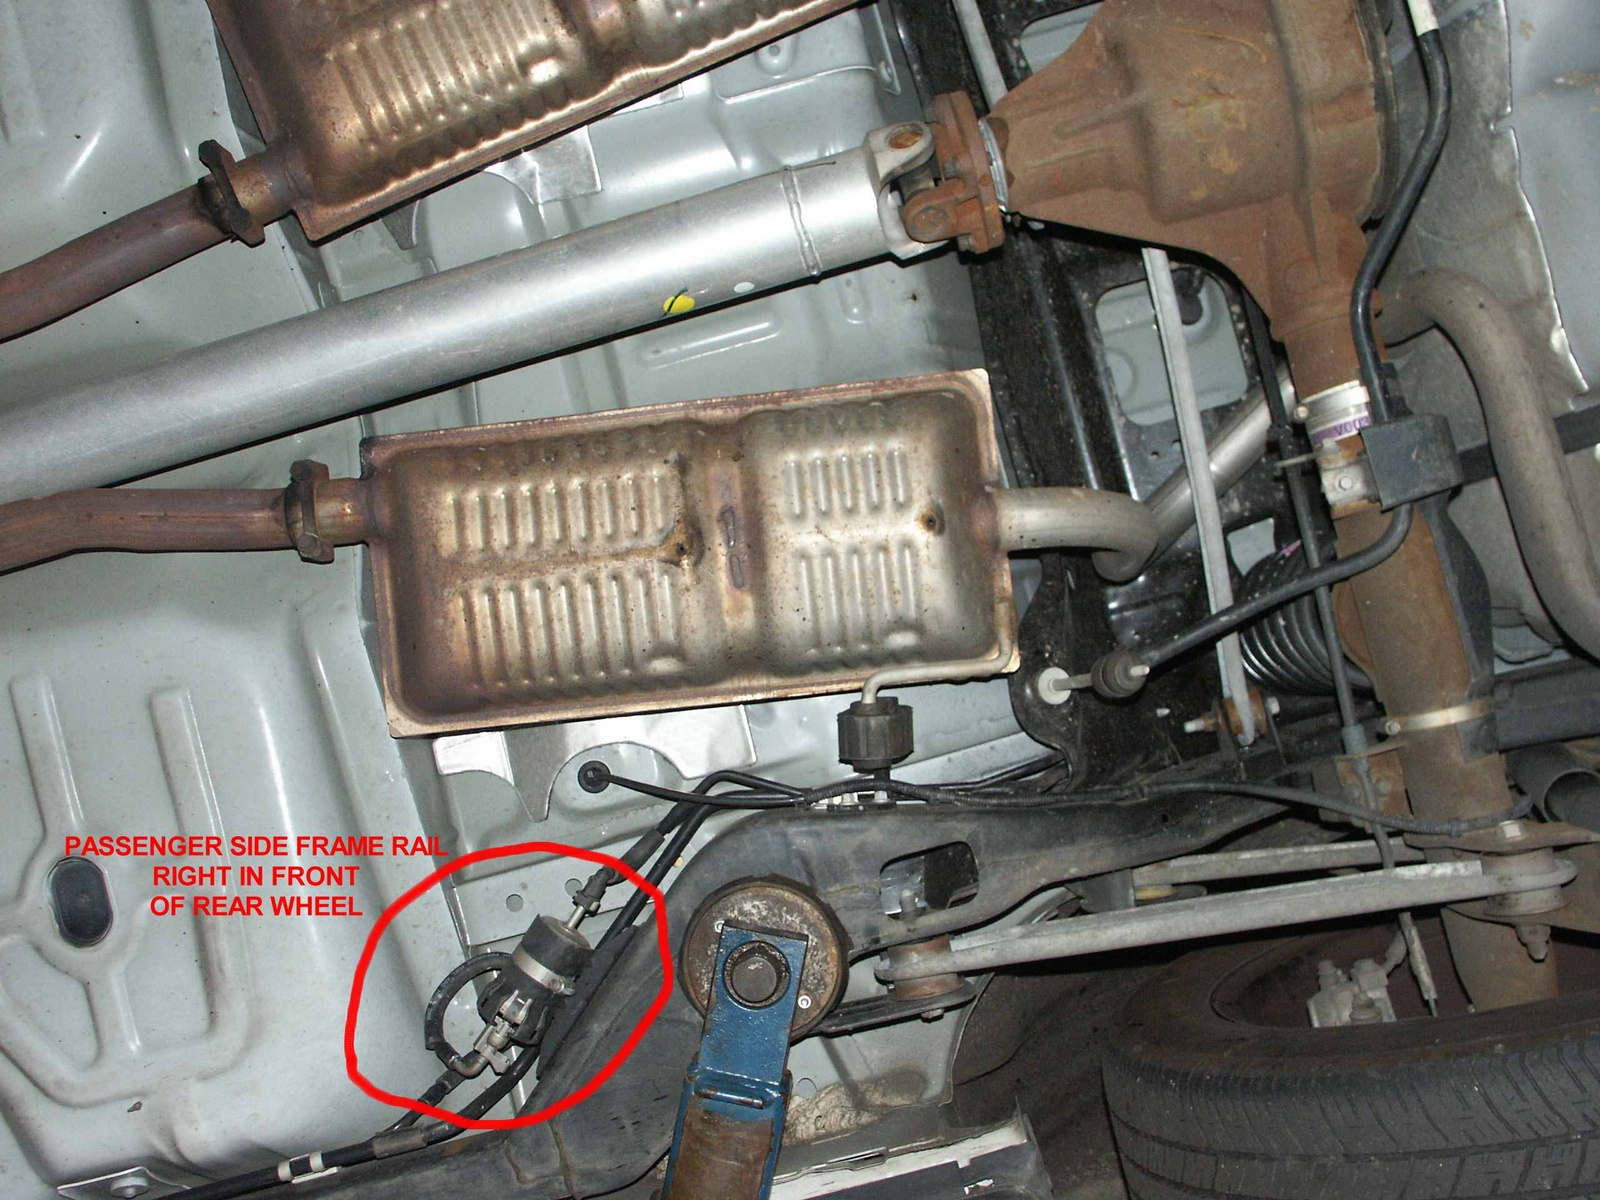 You'll need the special tool to remove the fuel line clamps from the filter.  Good Luck, Kenny/MrBlueOval